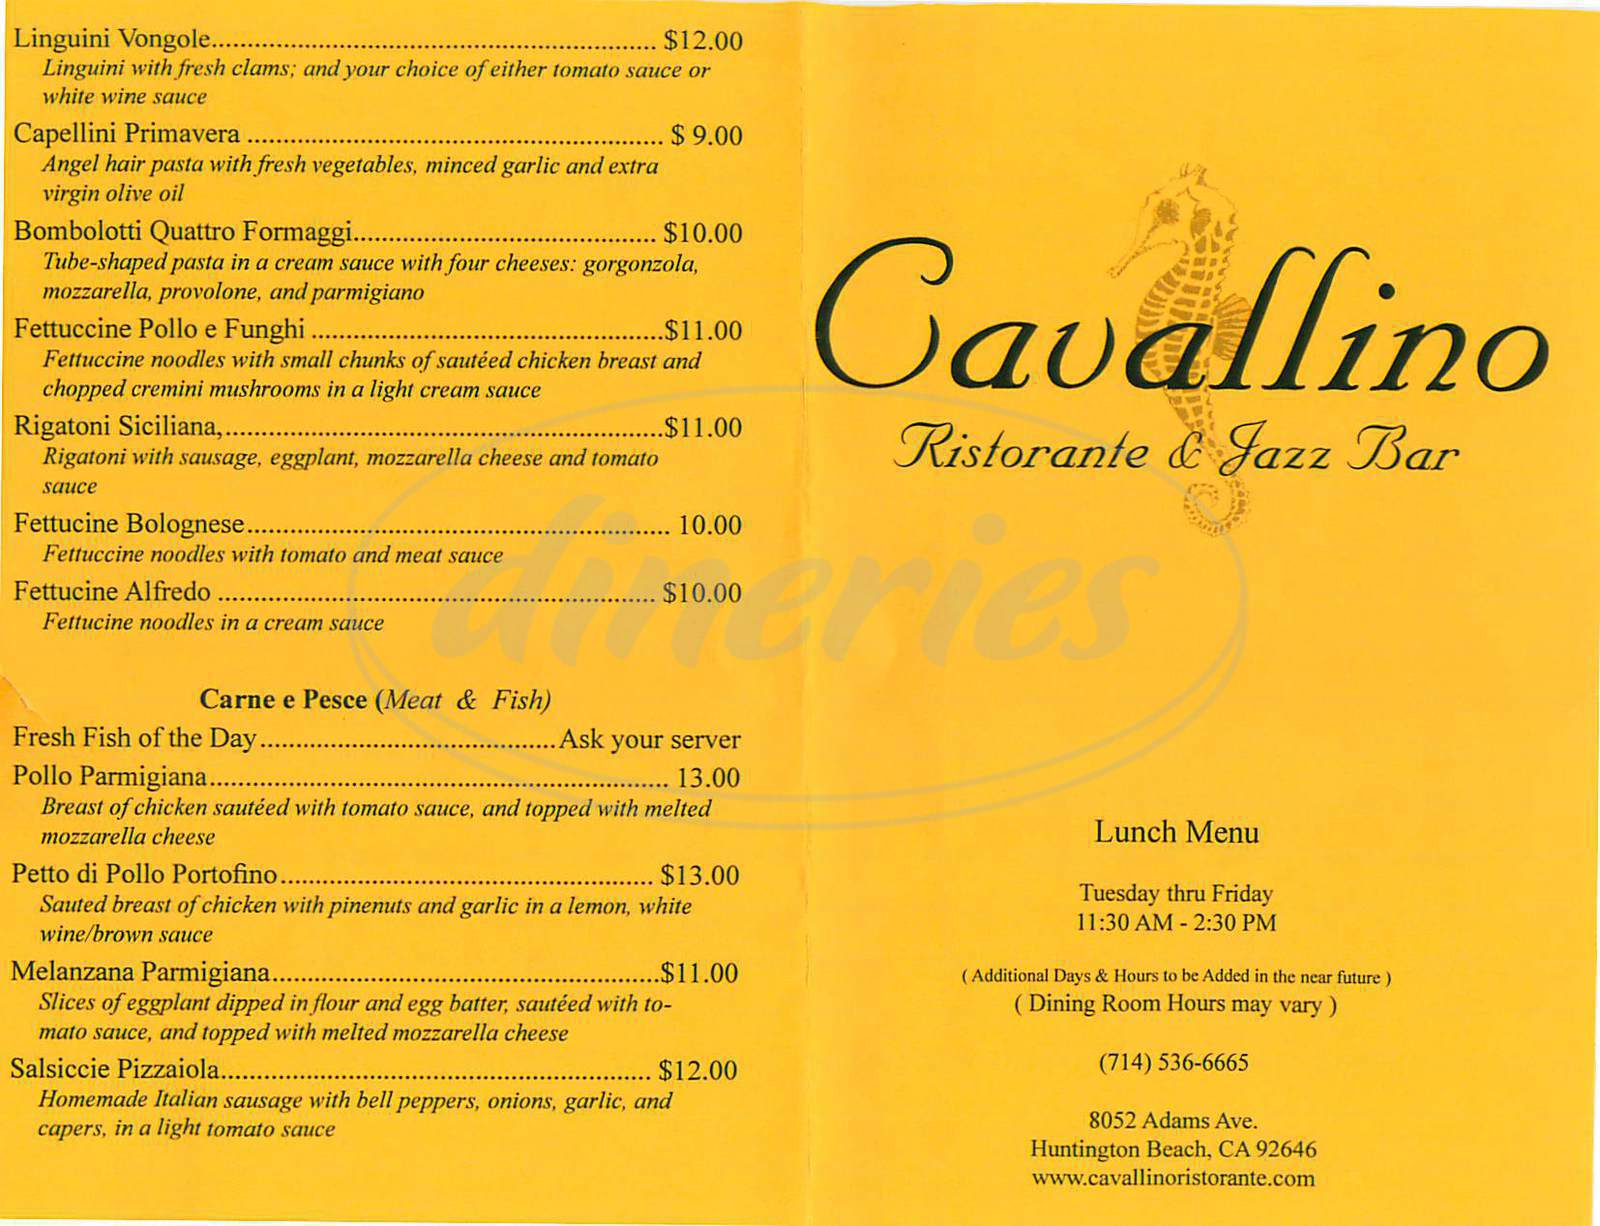 menu for Cavallino Ristorante